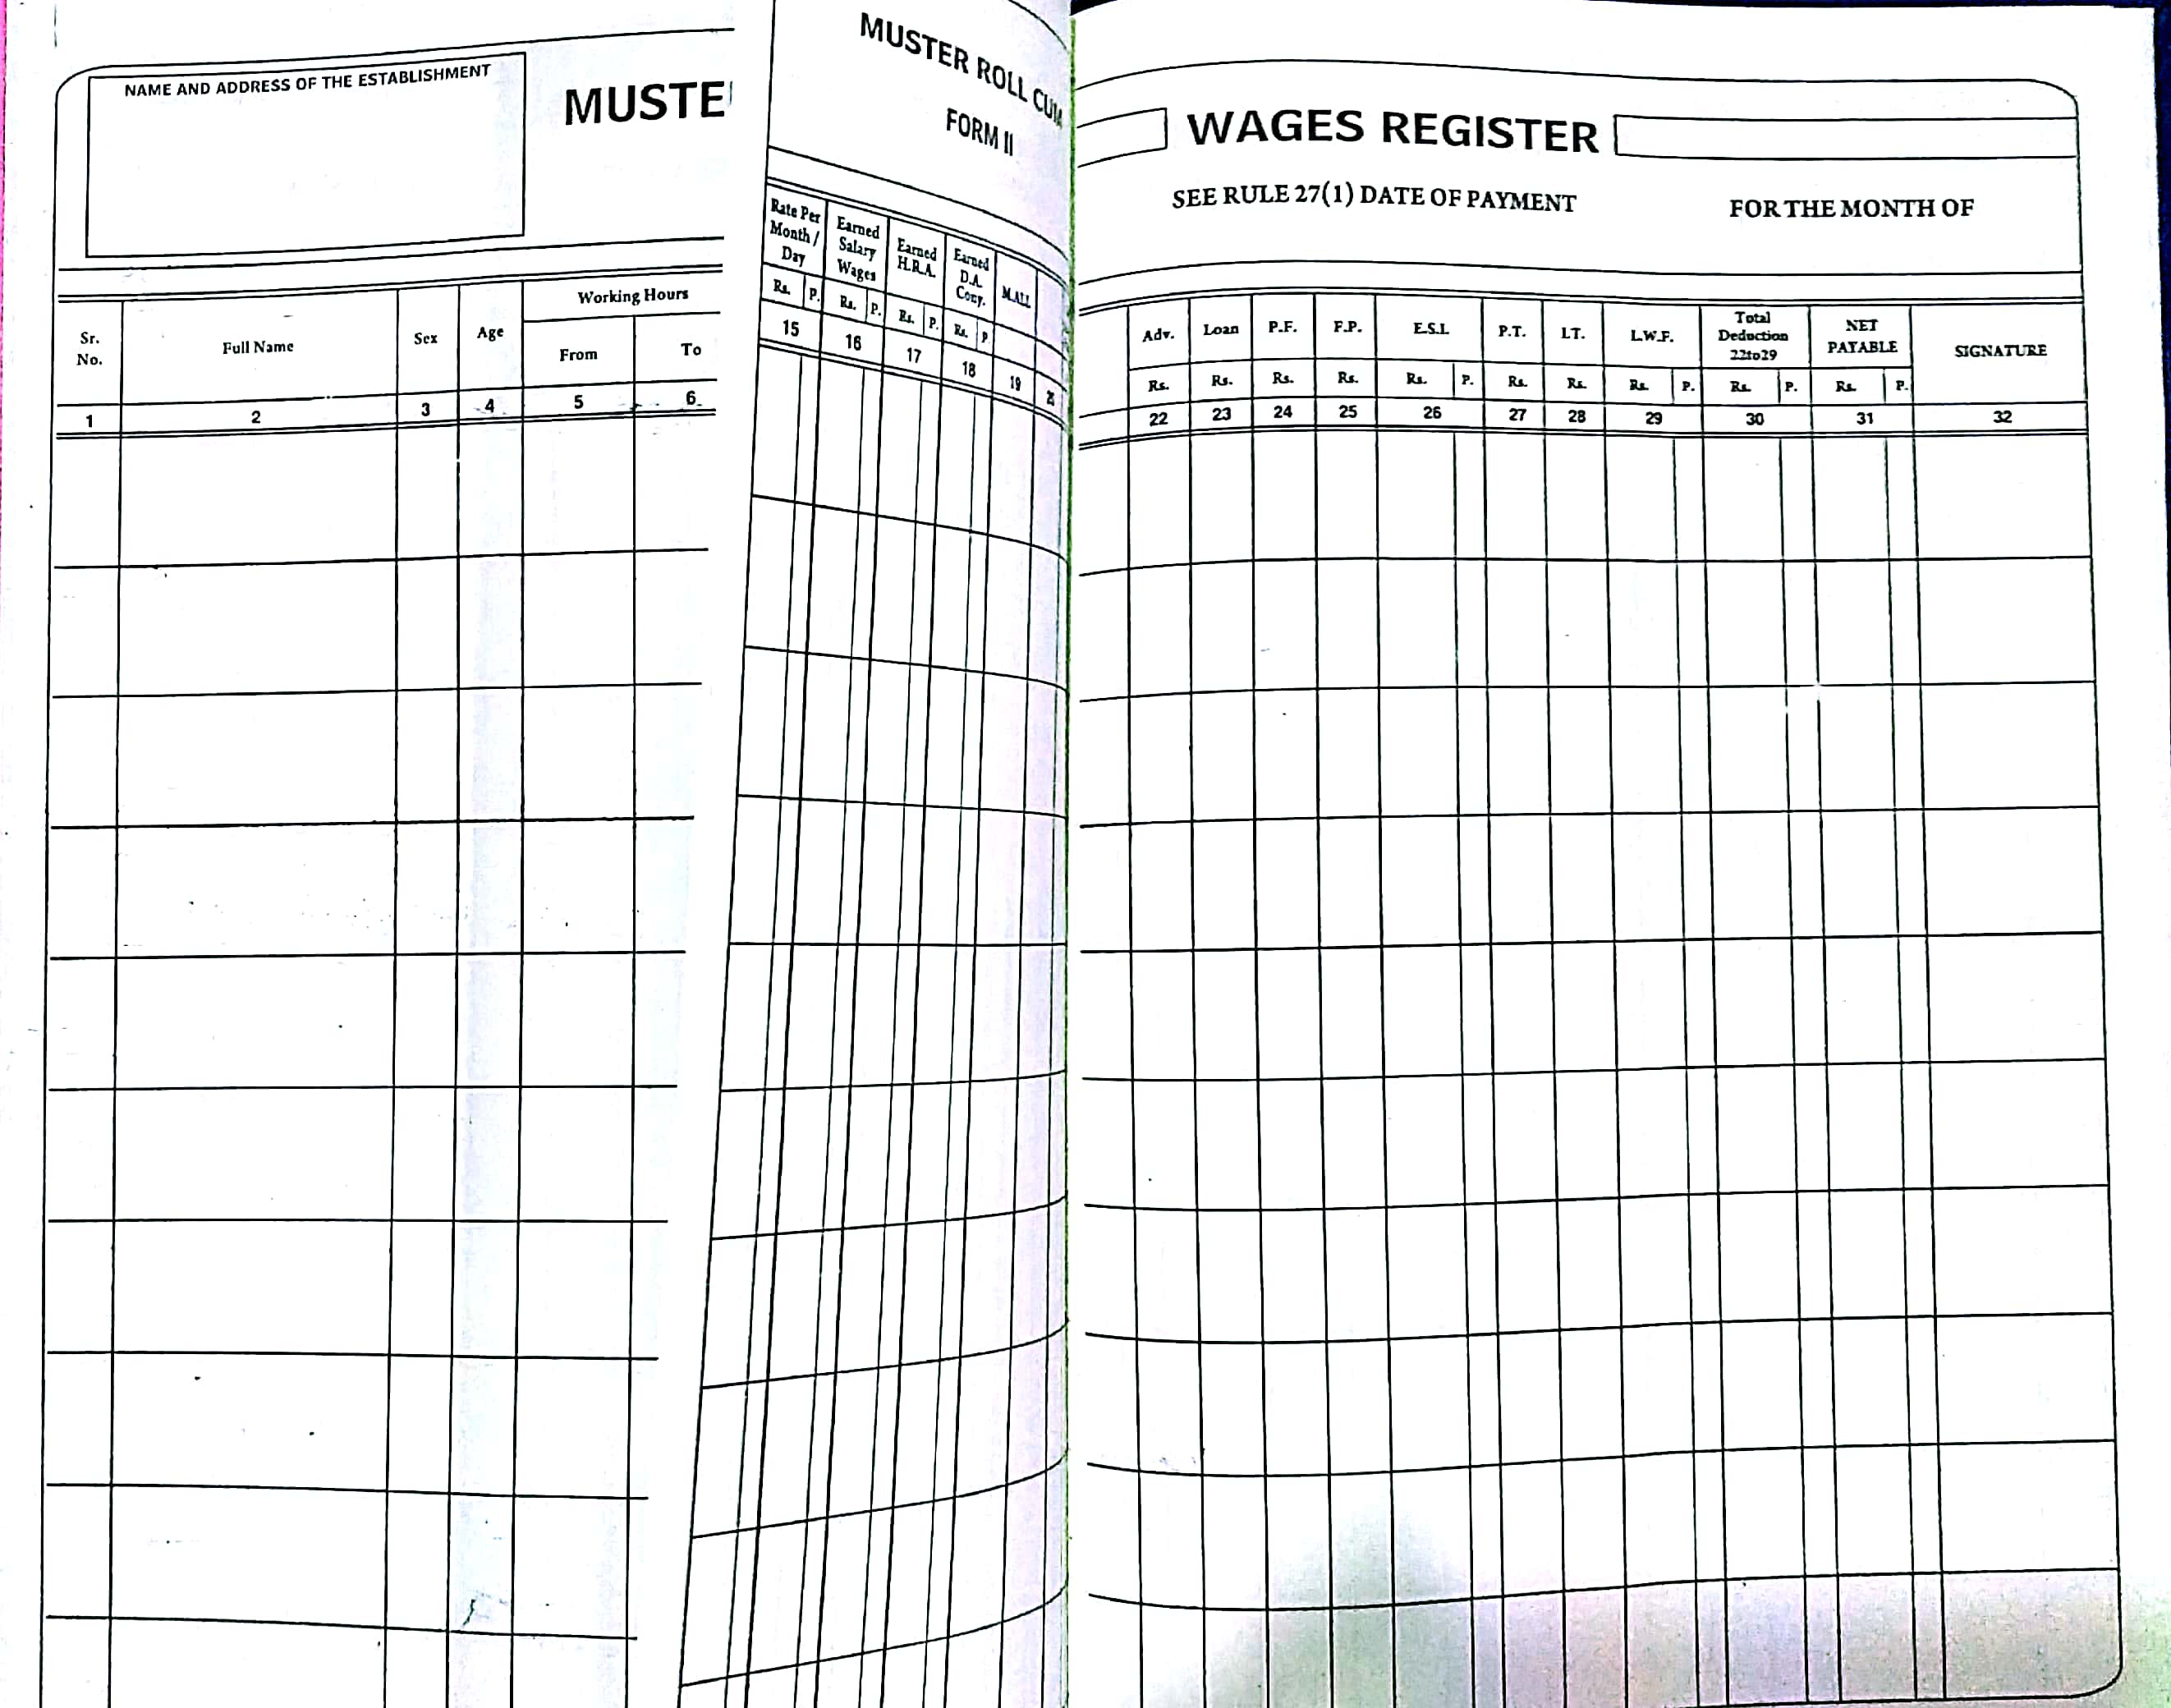 salary register muster wages